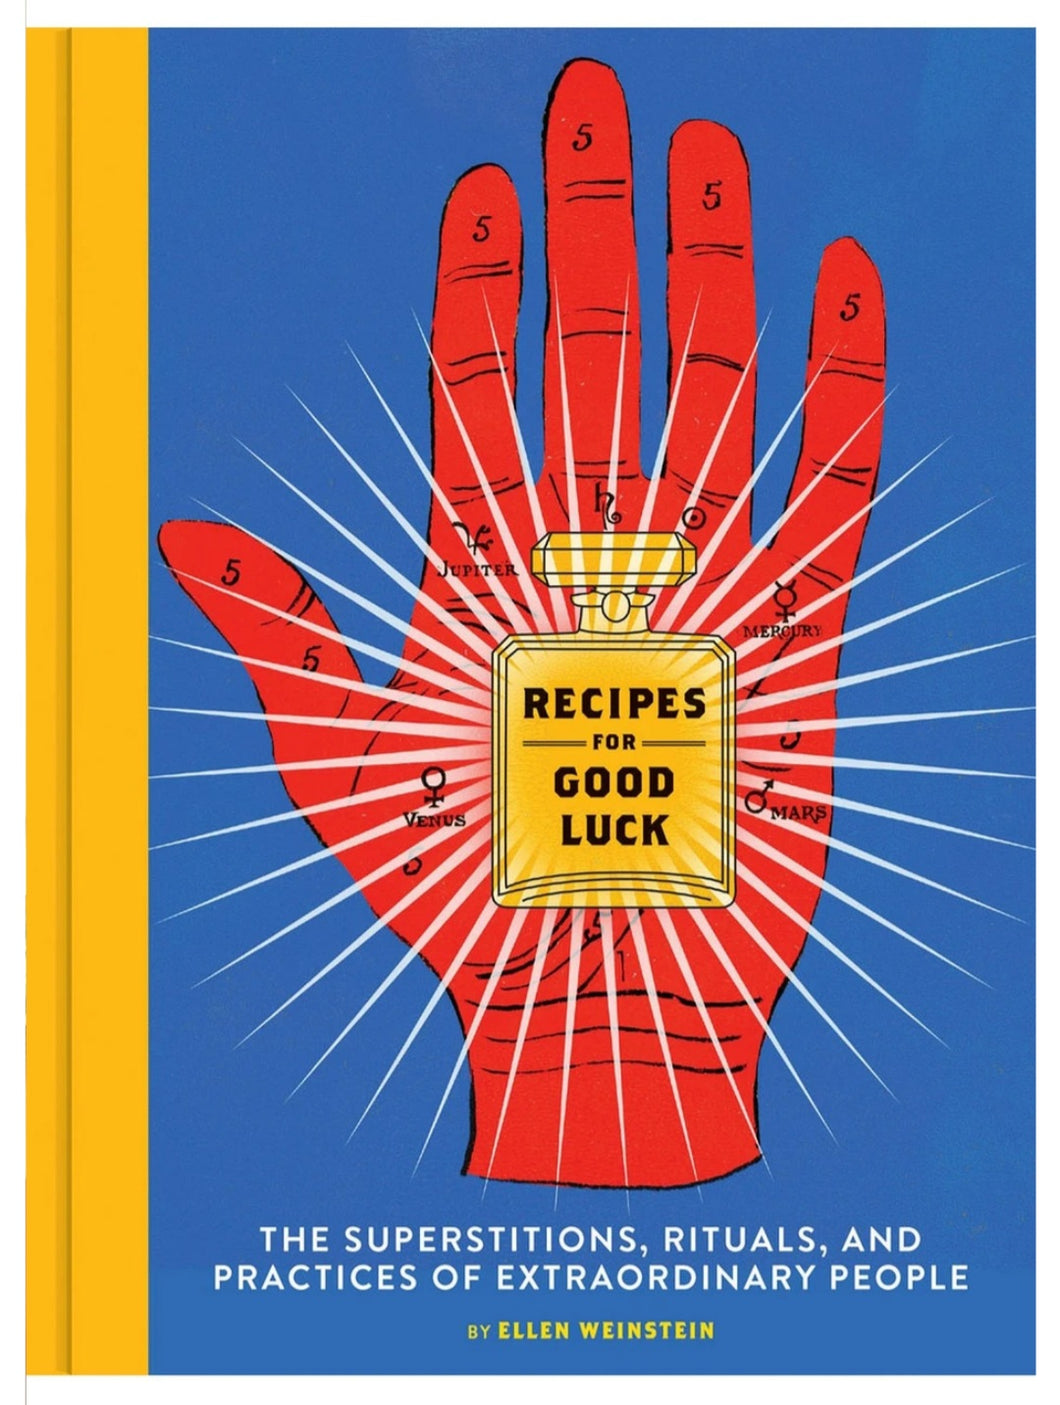 Recipes For Good Luck: The Superstitions, Rituals And Practices Of Extraordinary People By Ellen Weinstein